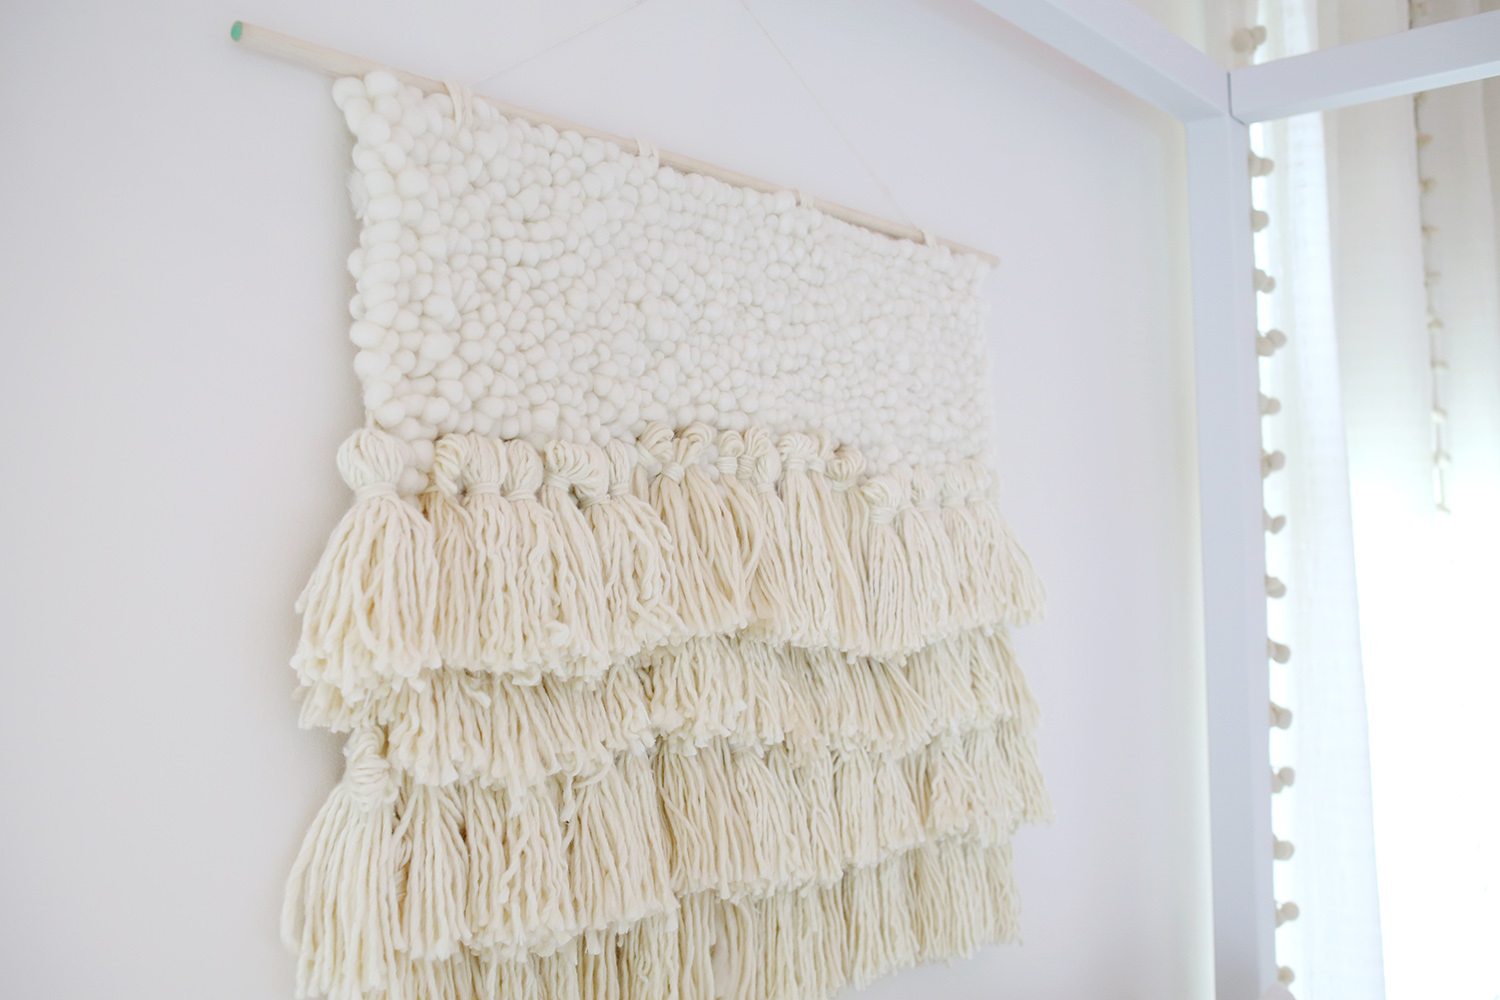 DIY Fiber Art via A Beautiful Mess